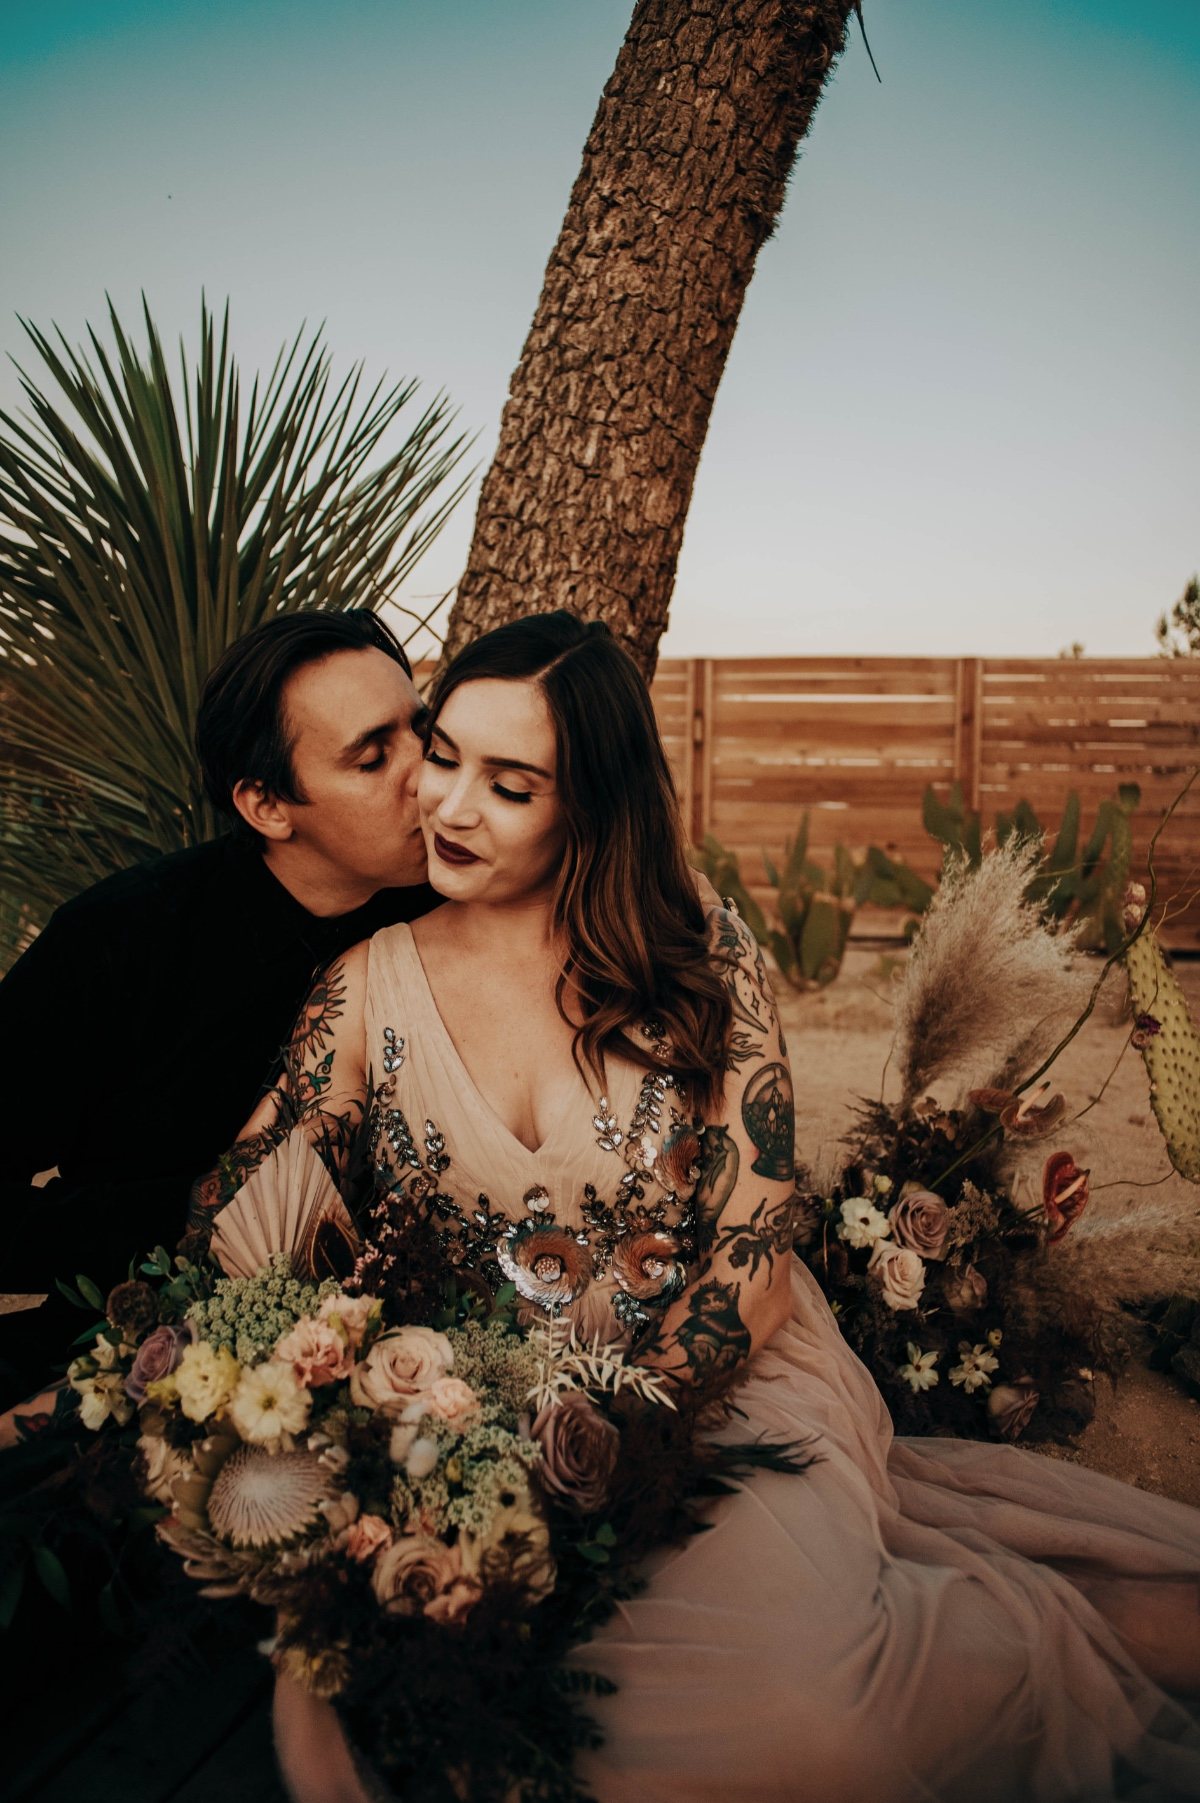 Planning a First Wedding Anniversary Photo Shoot Helped This Bride Turned Florist Deal With the Post-Wedding Blues